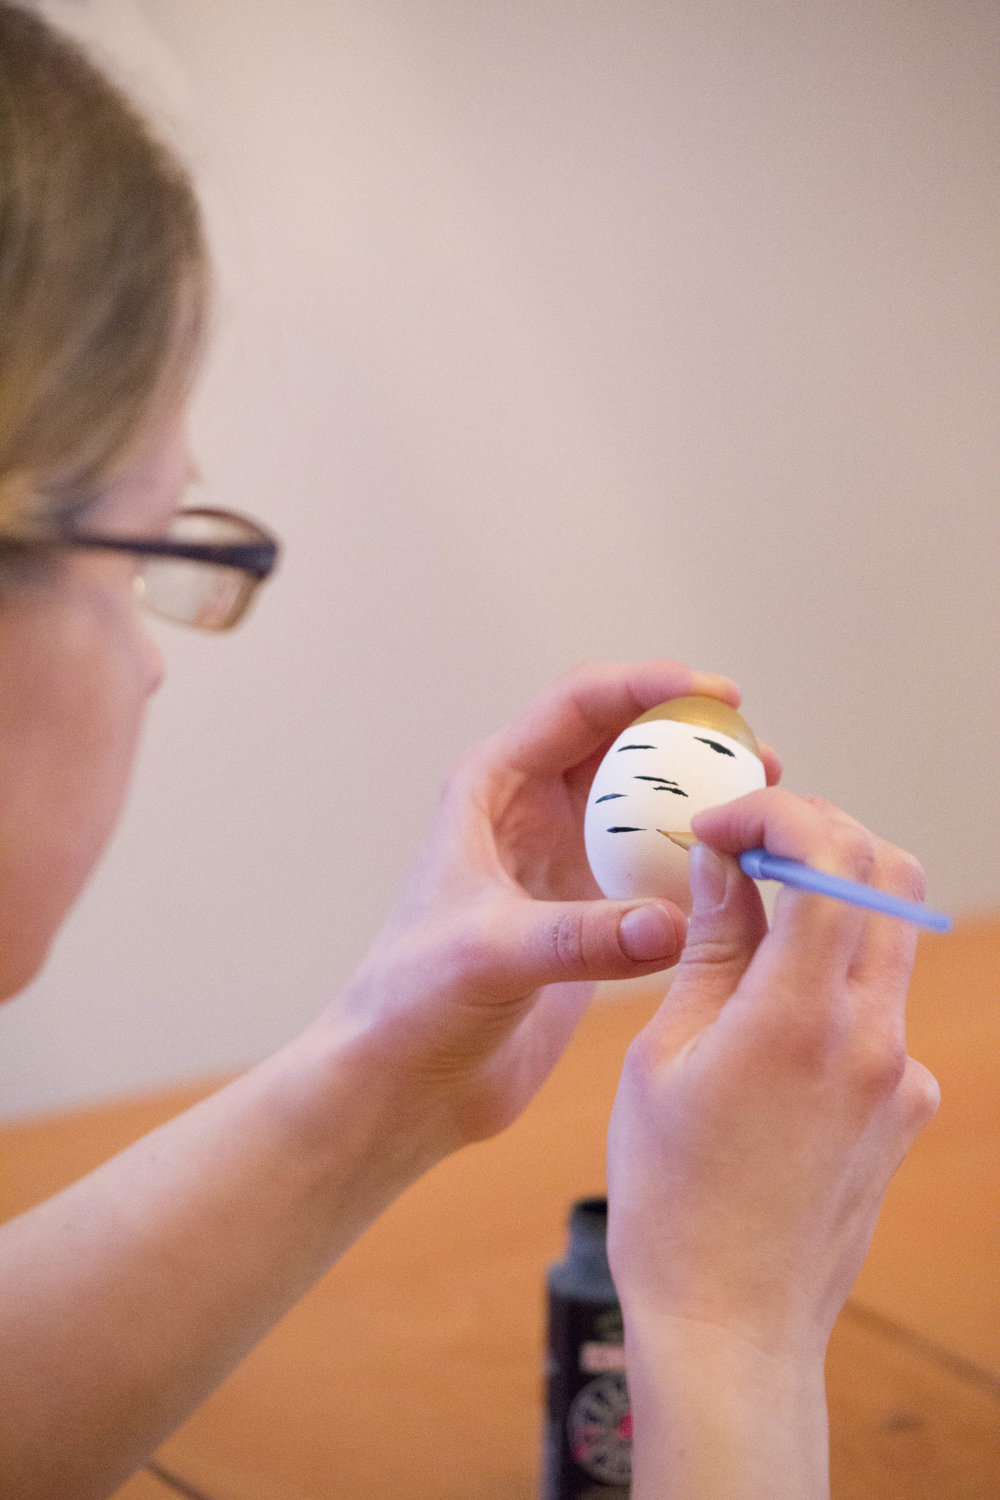 Hand-painting a birch bark design to the egg.